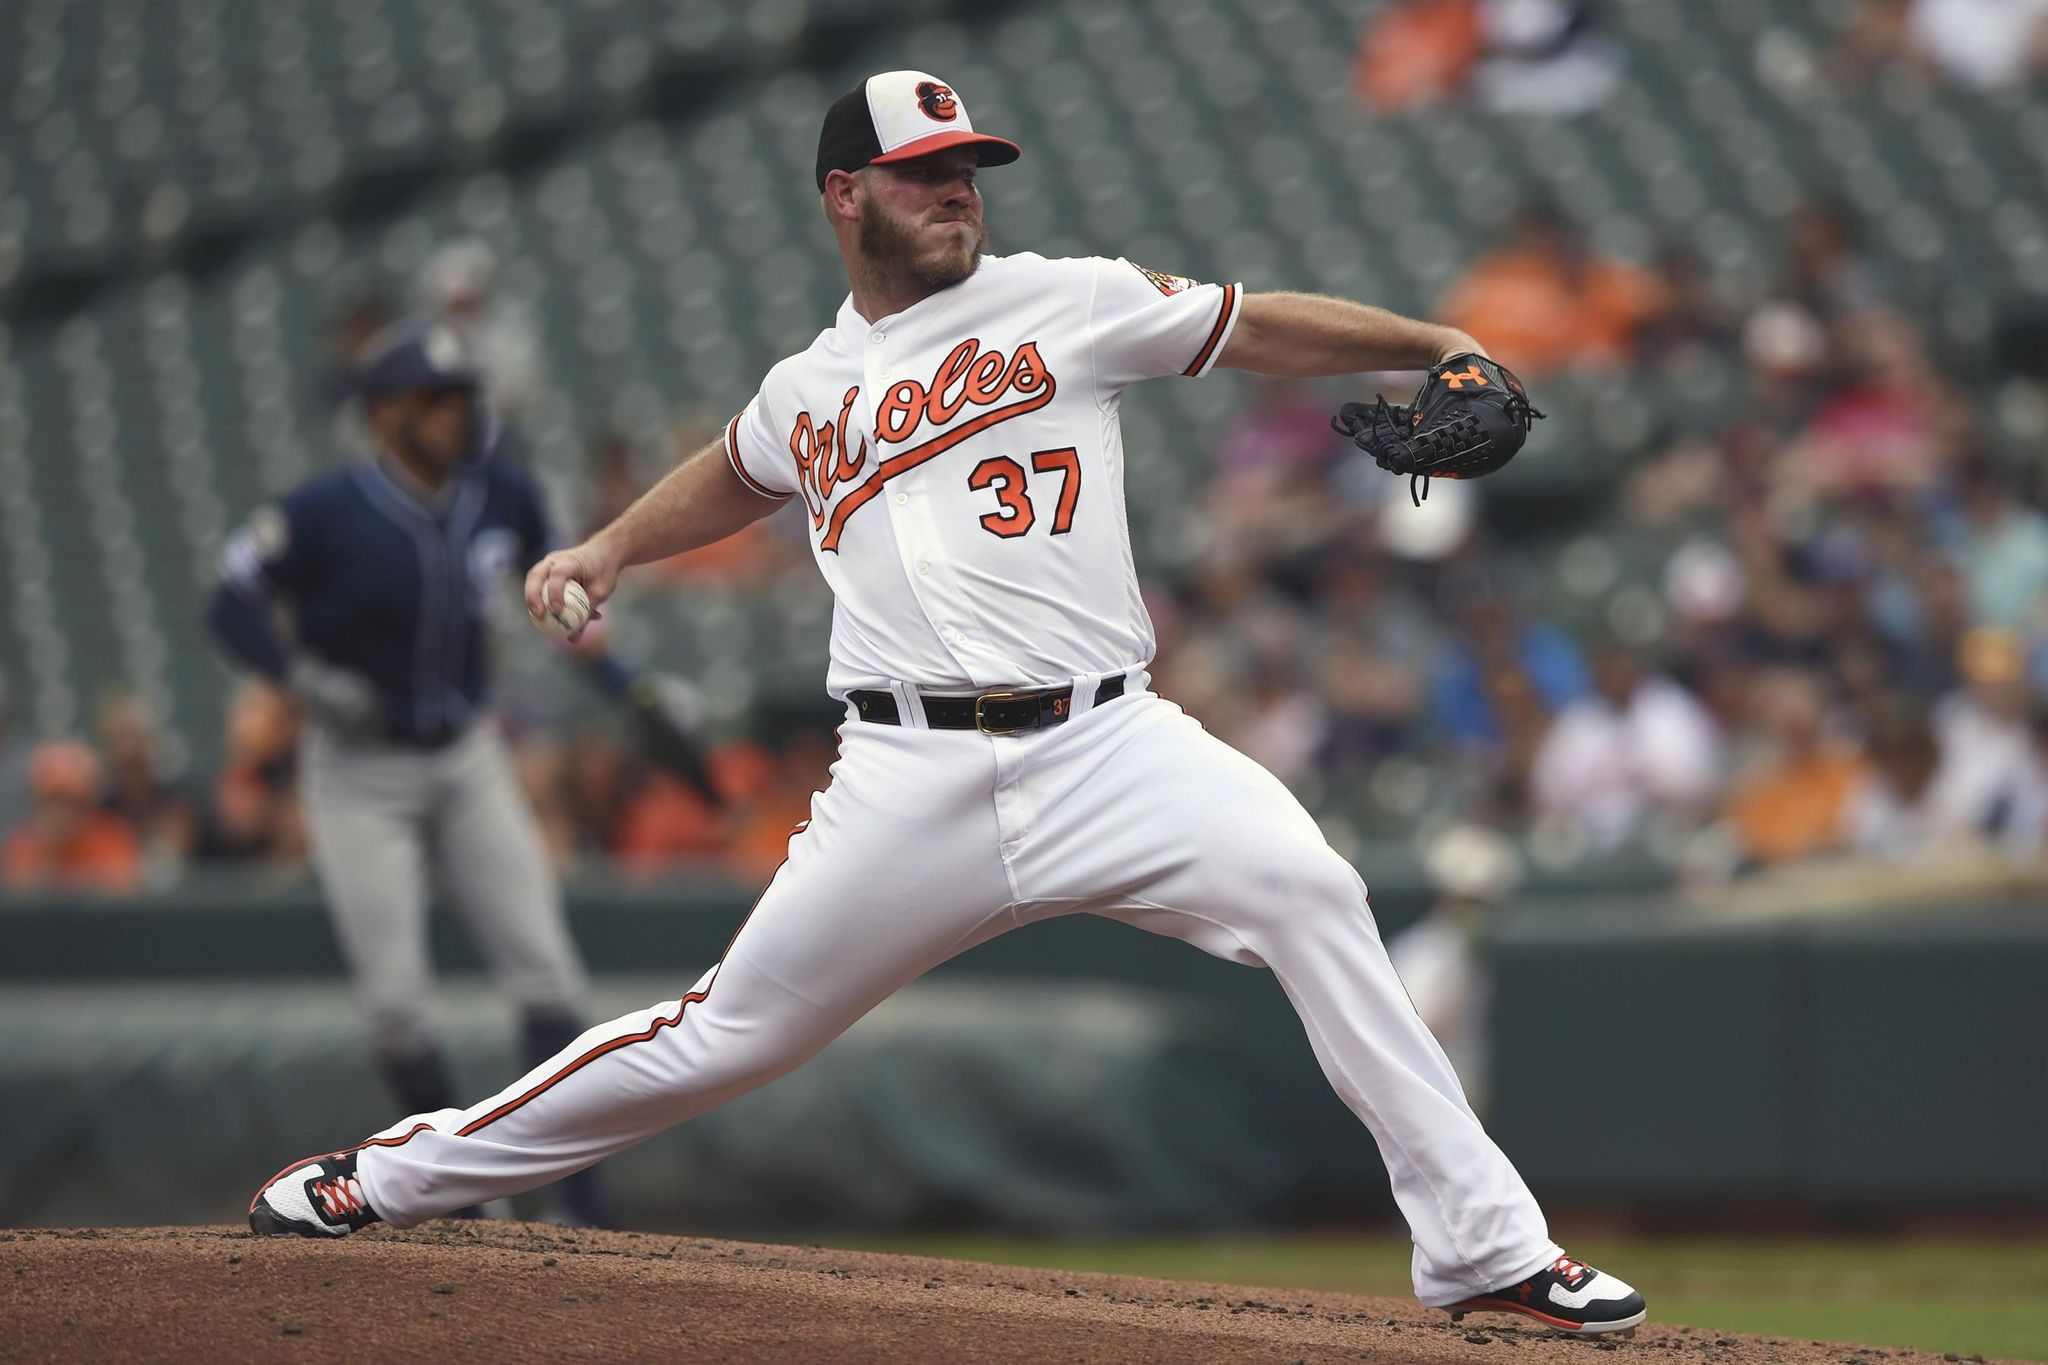 Orioles fans dig in for the long haul